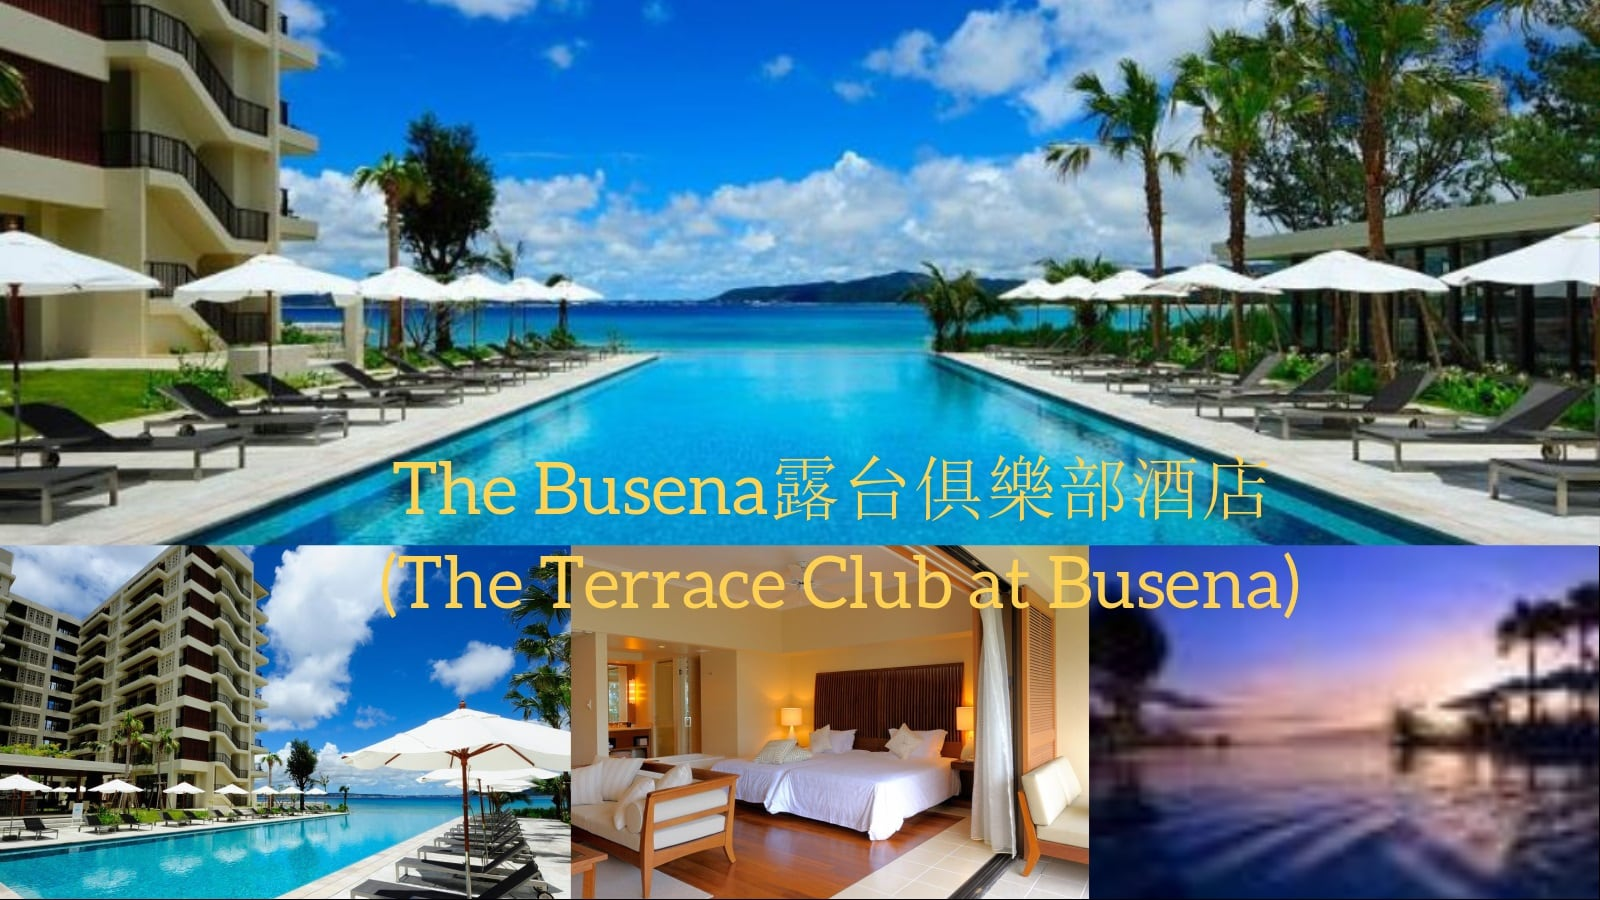 The Terrace Club at Busena